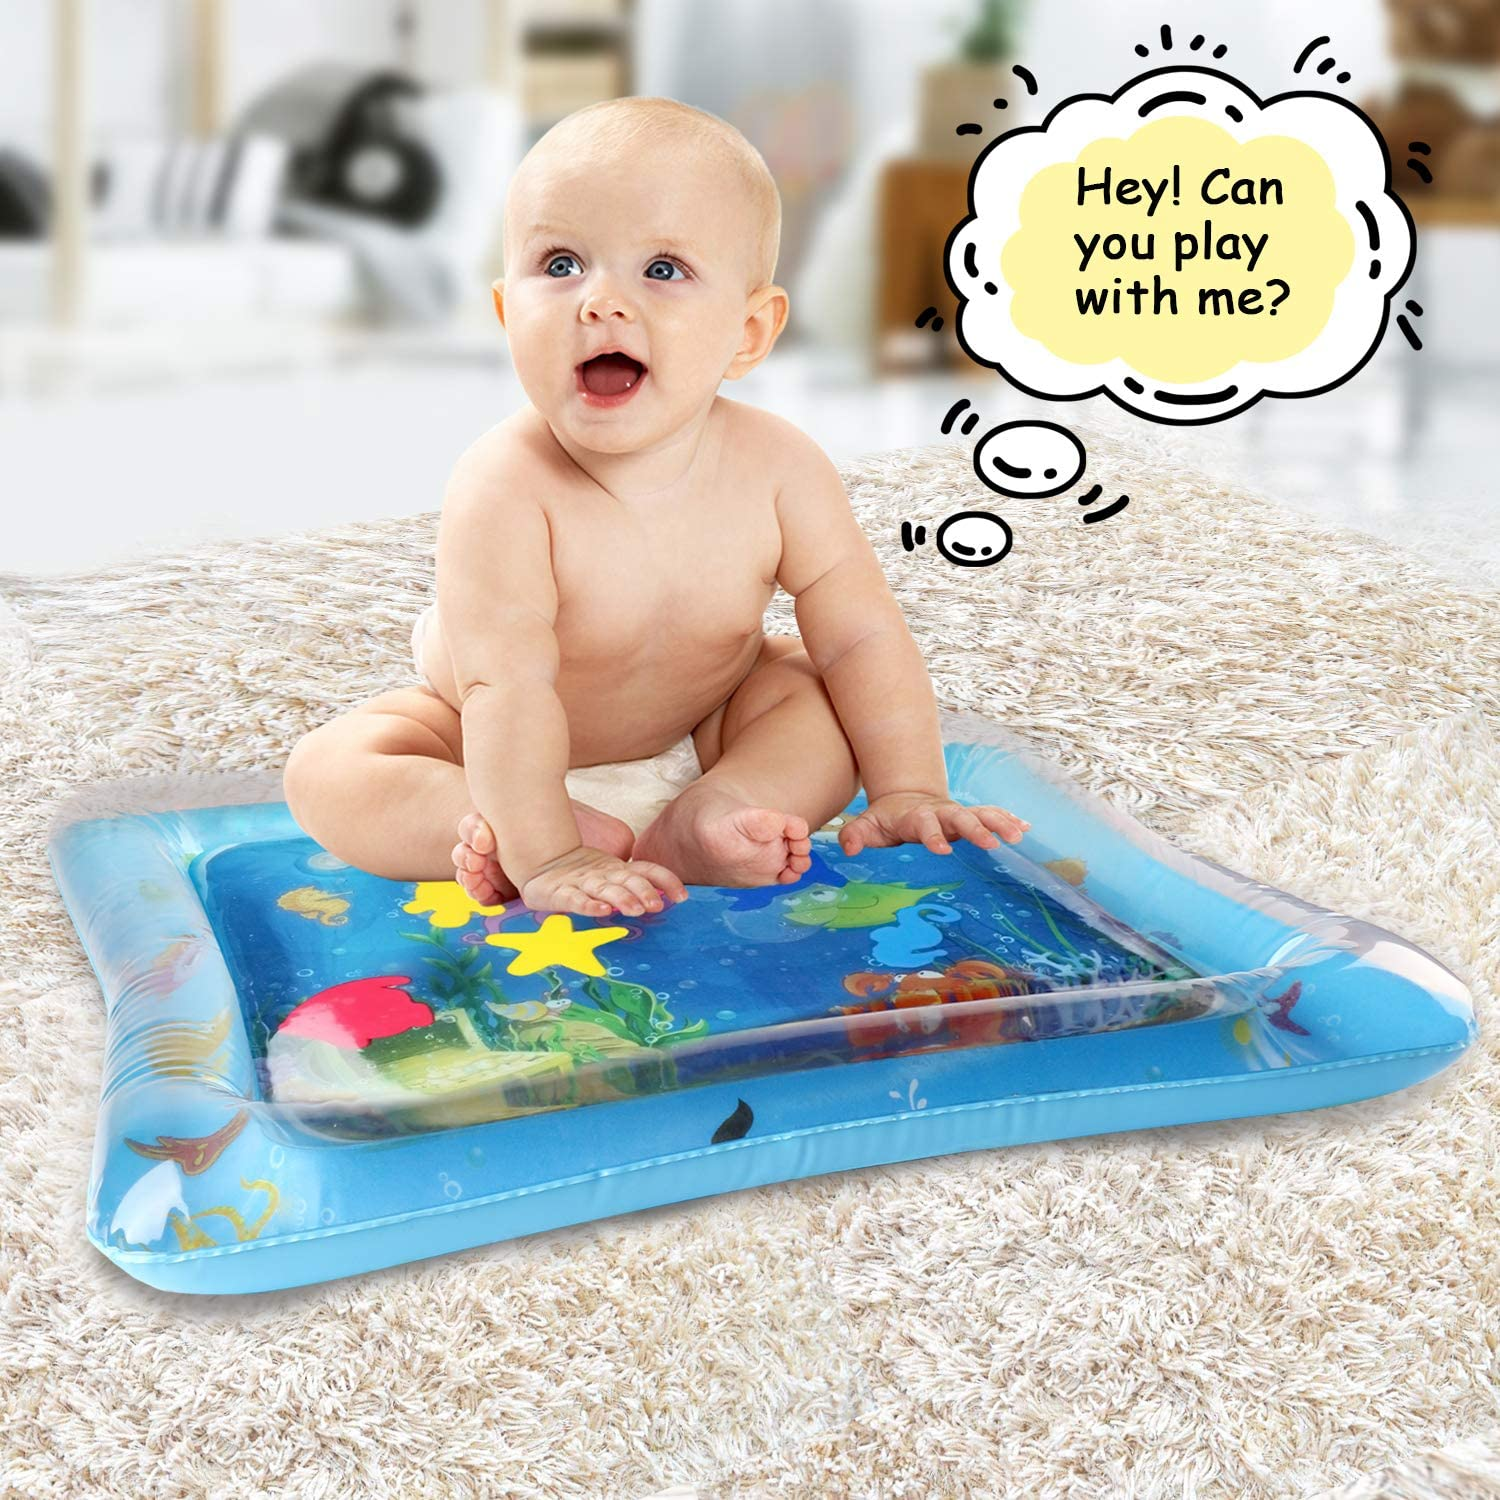 KidPal Tummy Time Water Play Mat Inflatable Infant Playmat Toys for Toddlers Babies Great Fun Water Mat for Baby Stimulation Growth